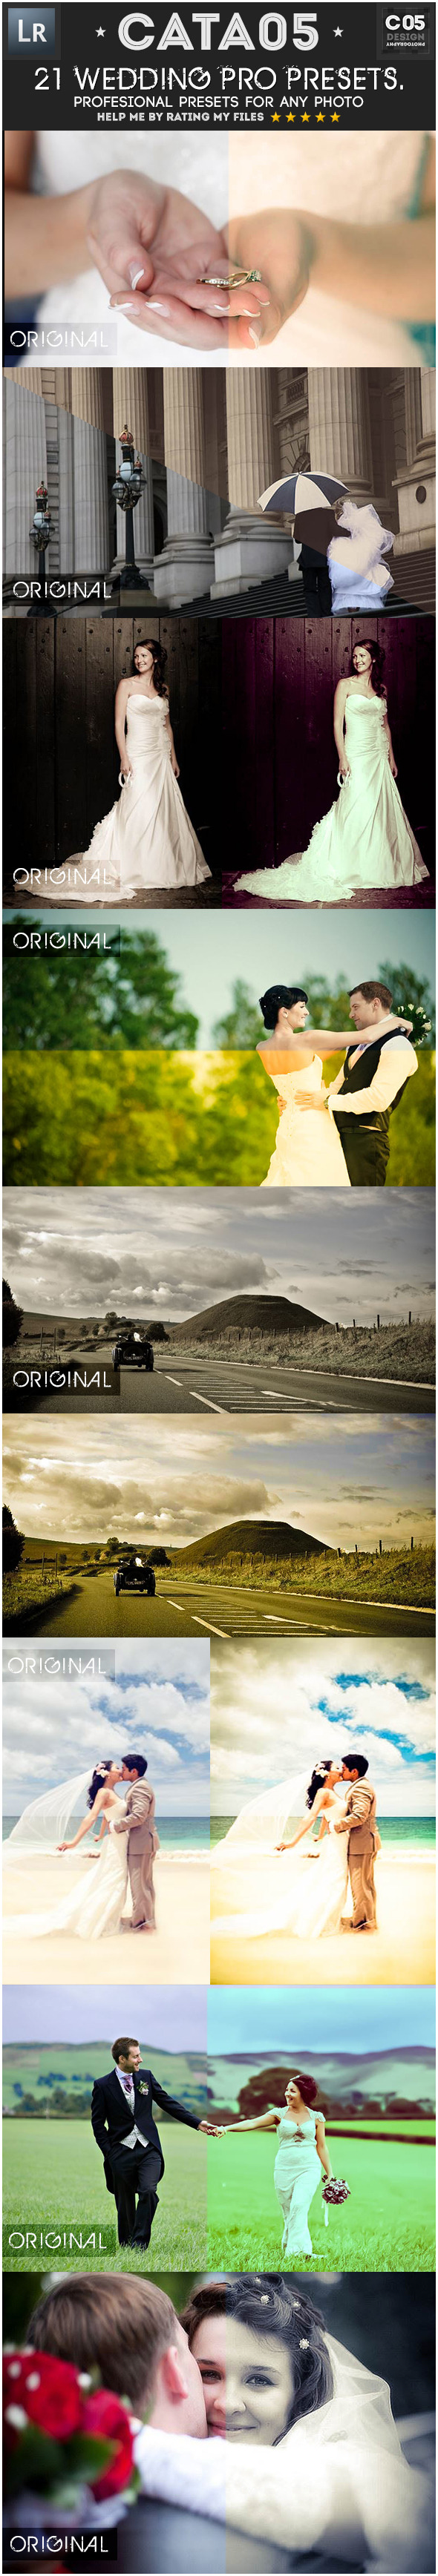 21 Wedding Pro Presets - Wedding Lightroom Presets